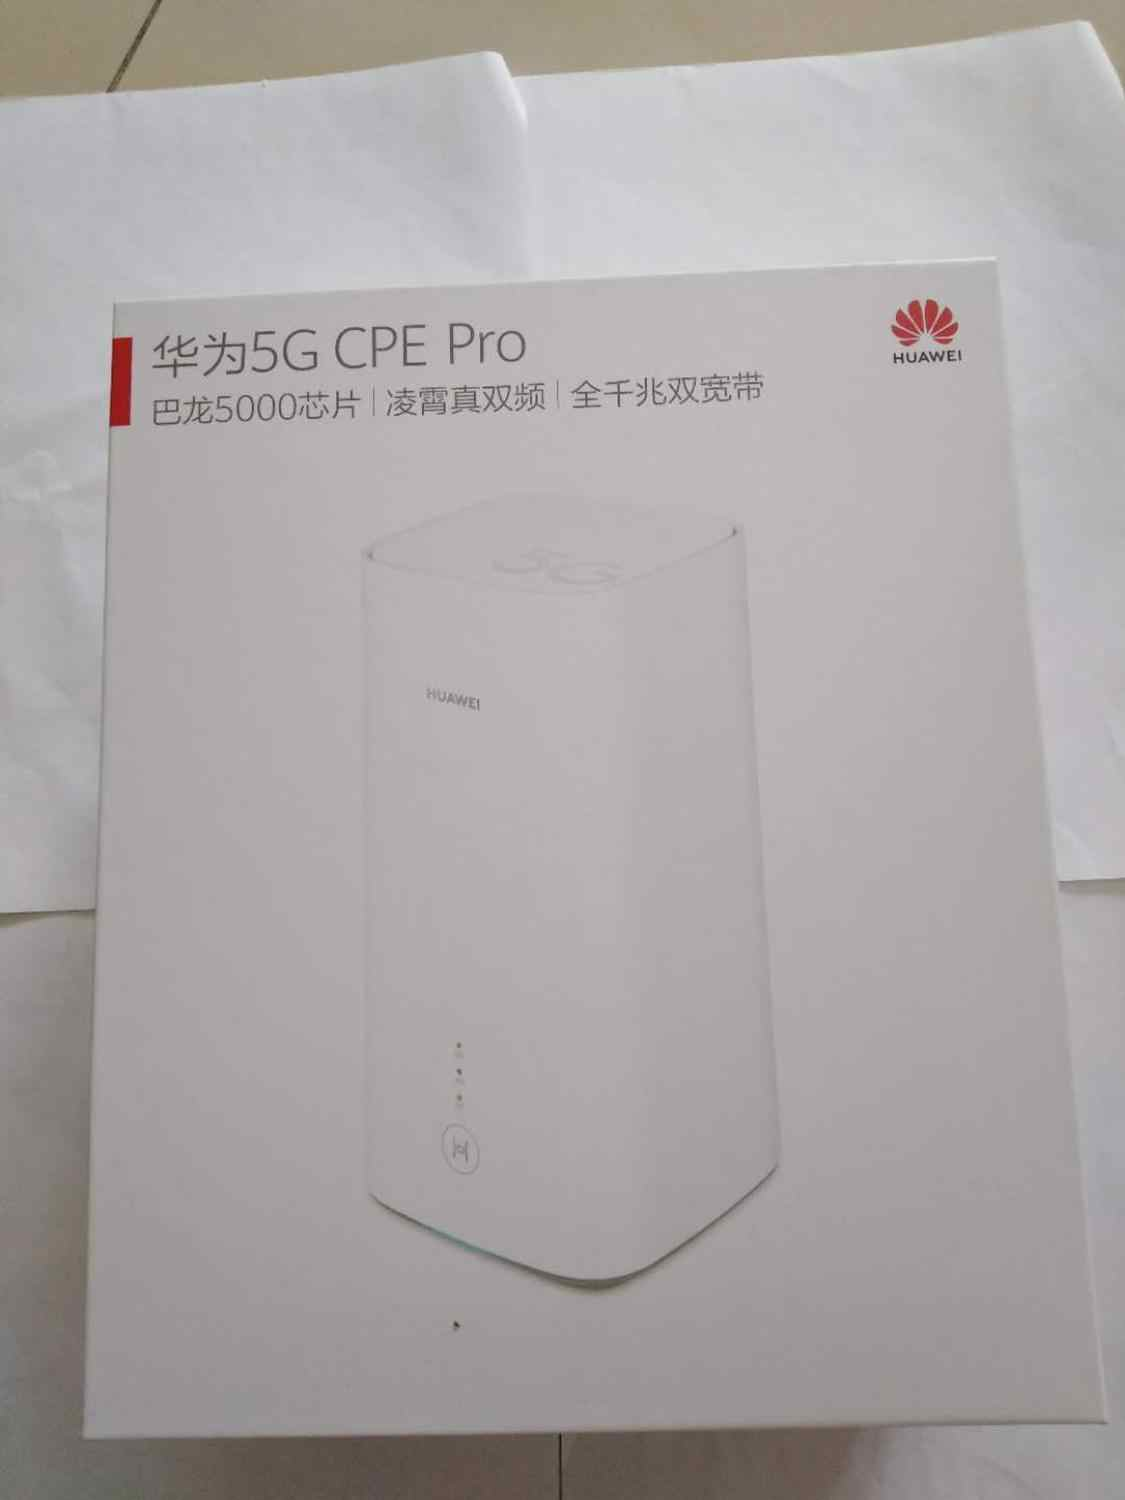 Huawei 5G CPE Pro(H112-372)5G NSA + SA(n41/n77/n78/n79),4G LTE(B1/3/5/7/8/18/19/20/28/32/34/38/39/40/41/42/43) CPE Router Wireless